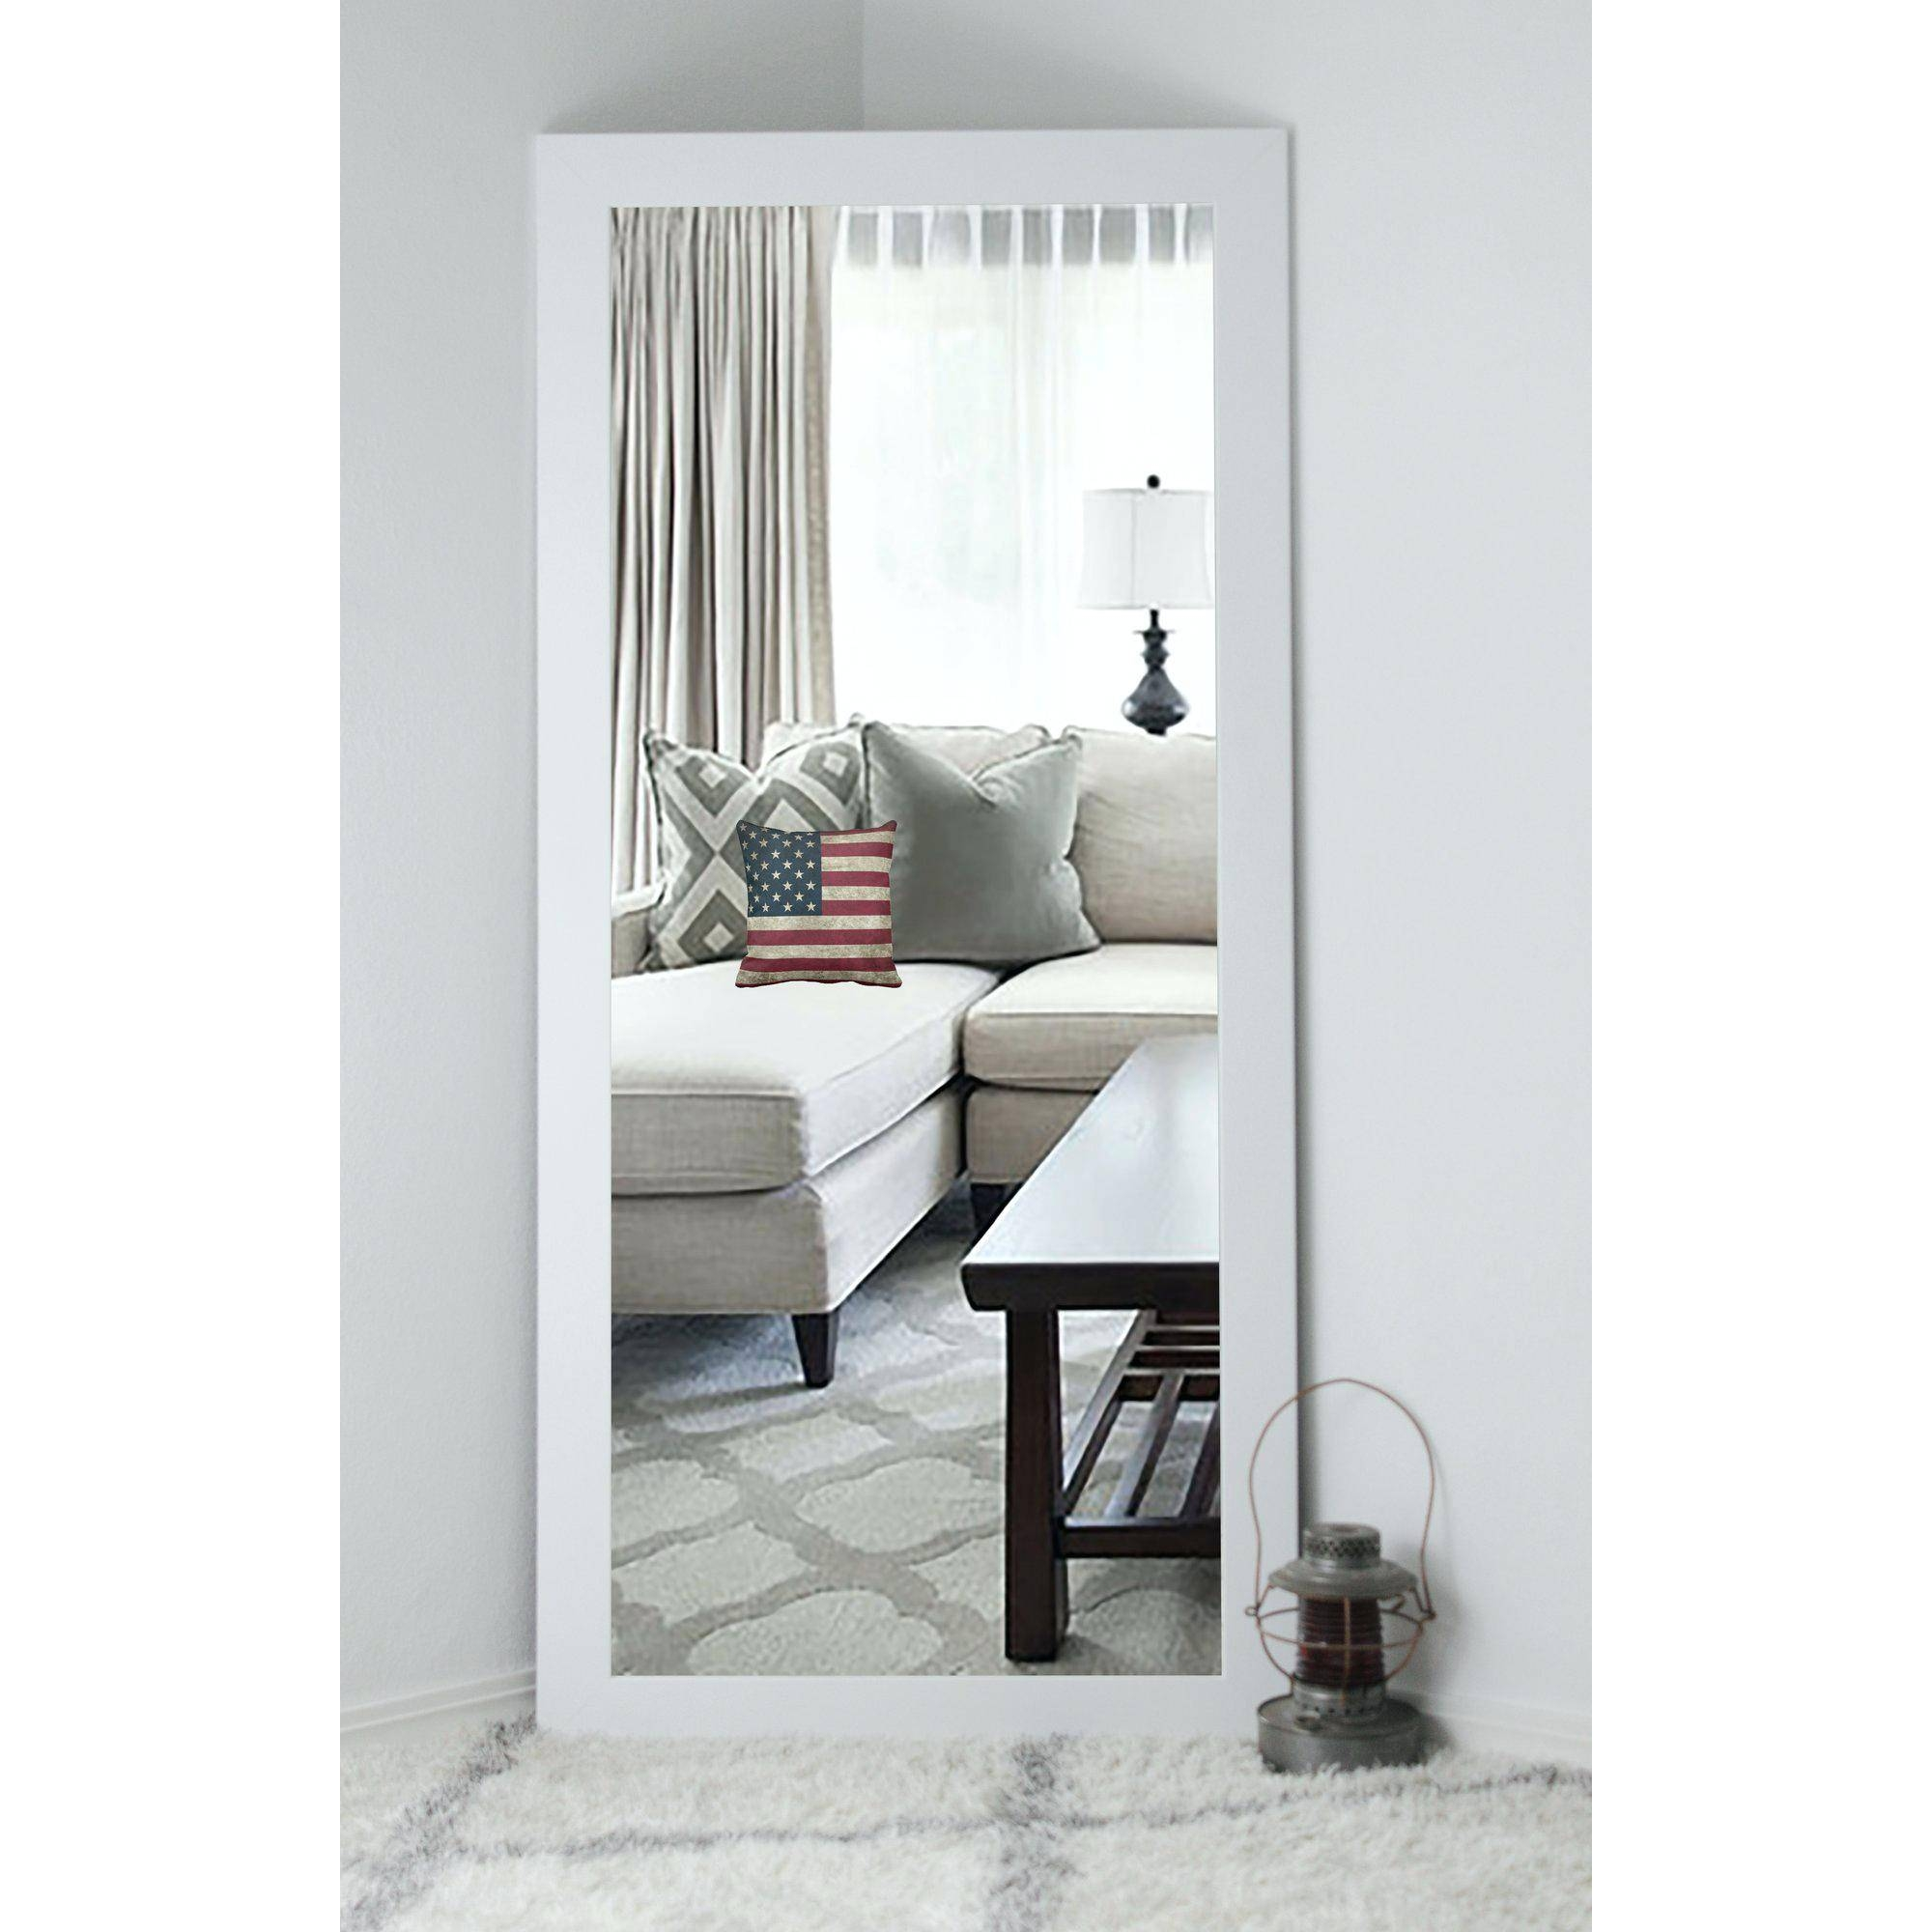 Quick Viewdecorative Full Length Mirror Decorative Mirrors intended for Full Length Decorative Mirrors (Image 22 of 25)